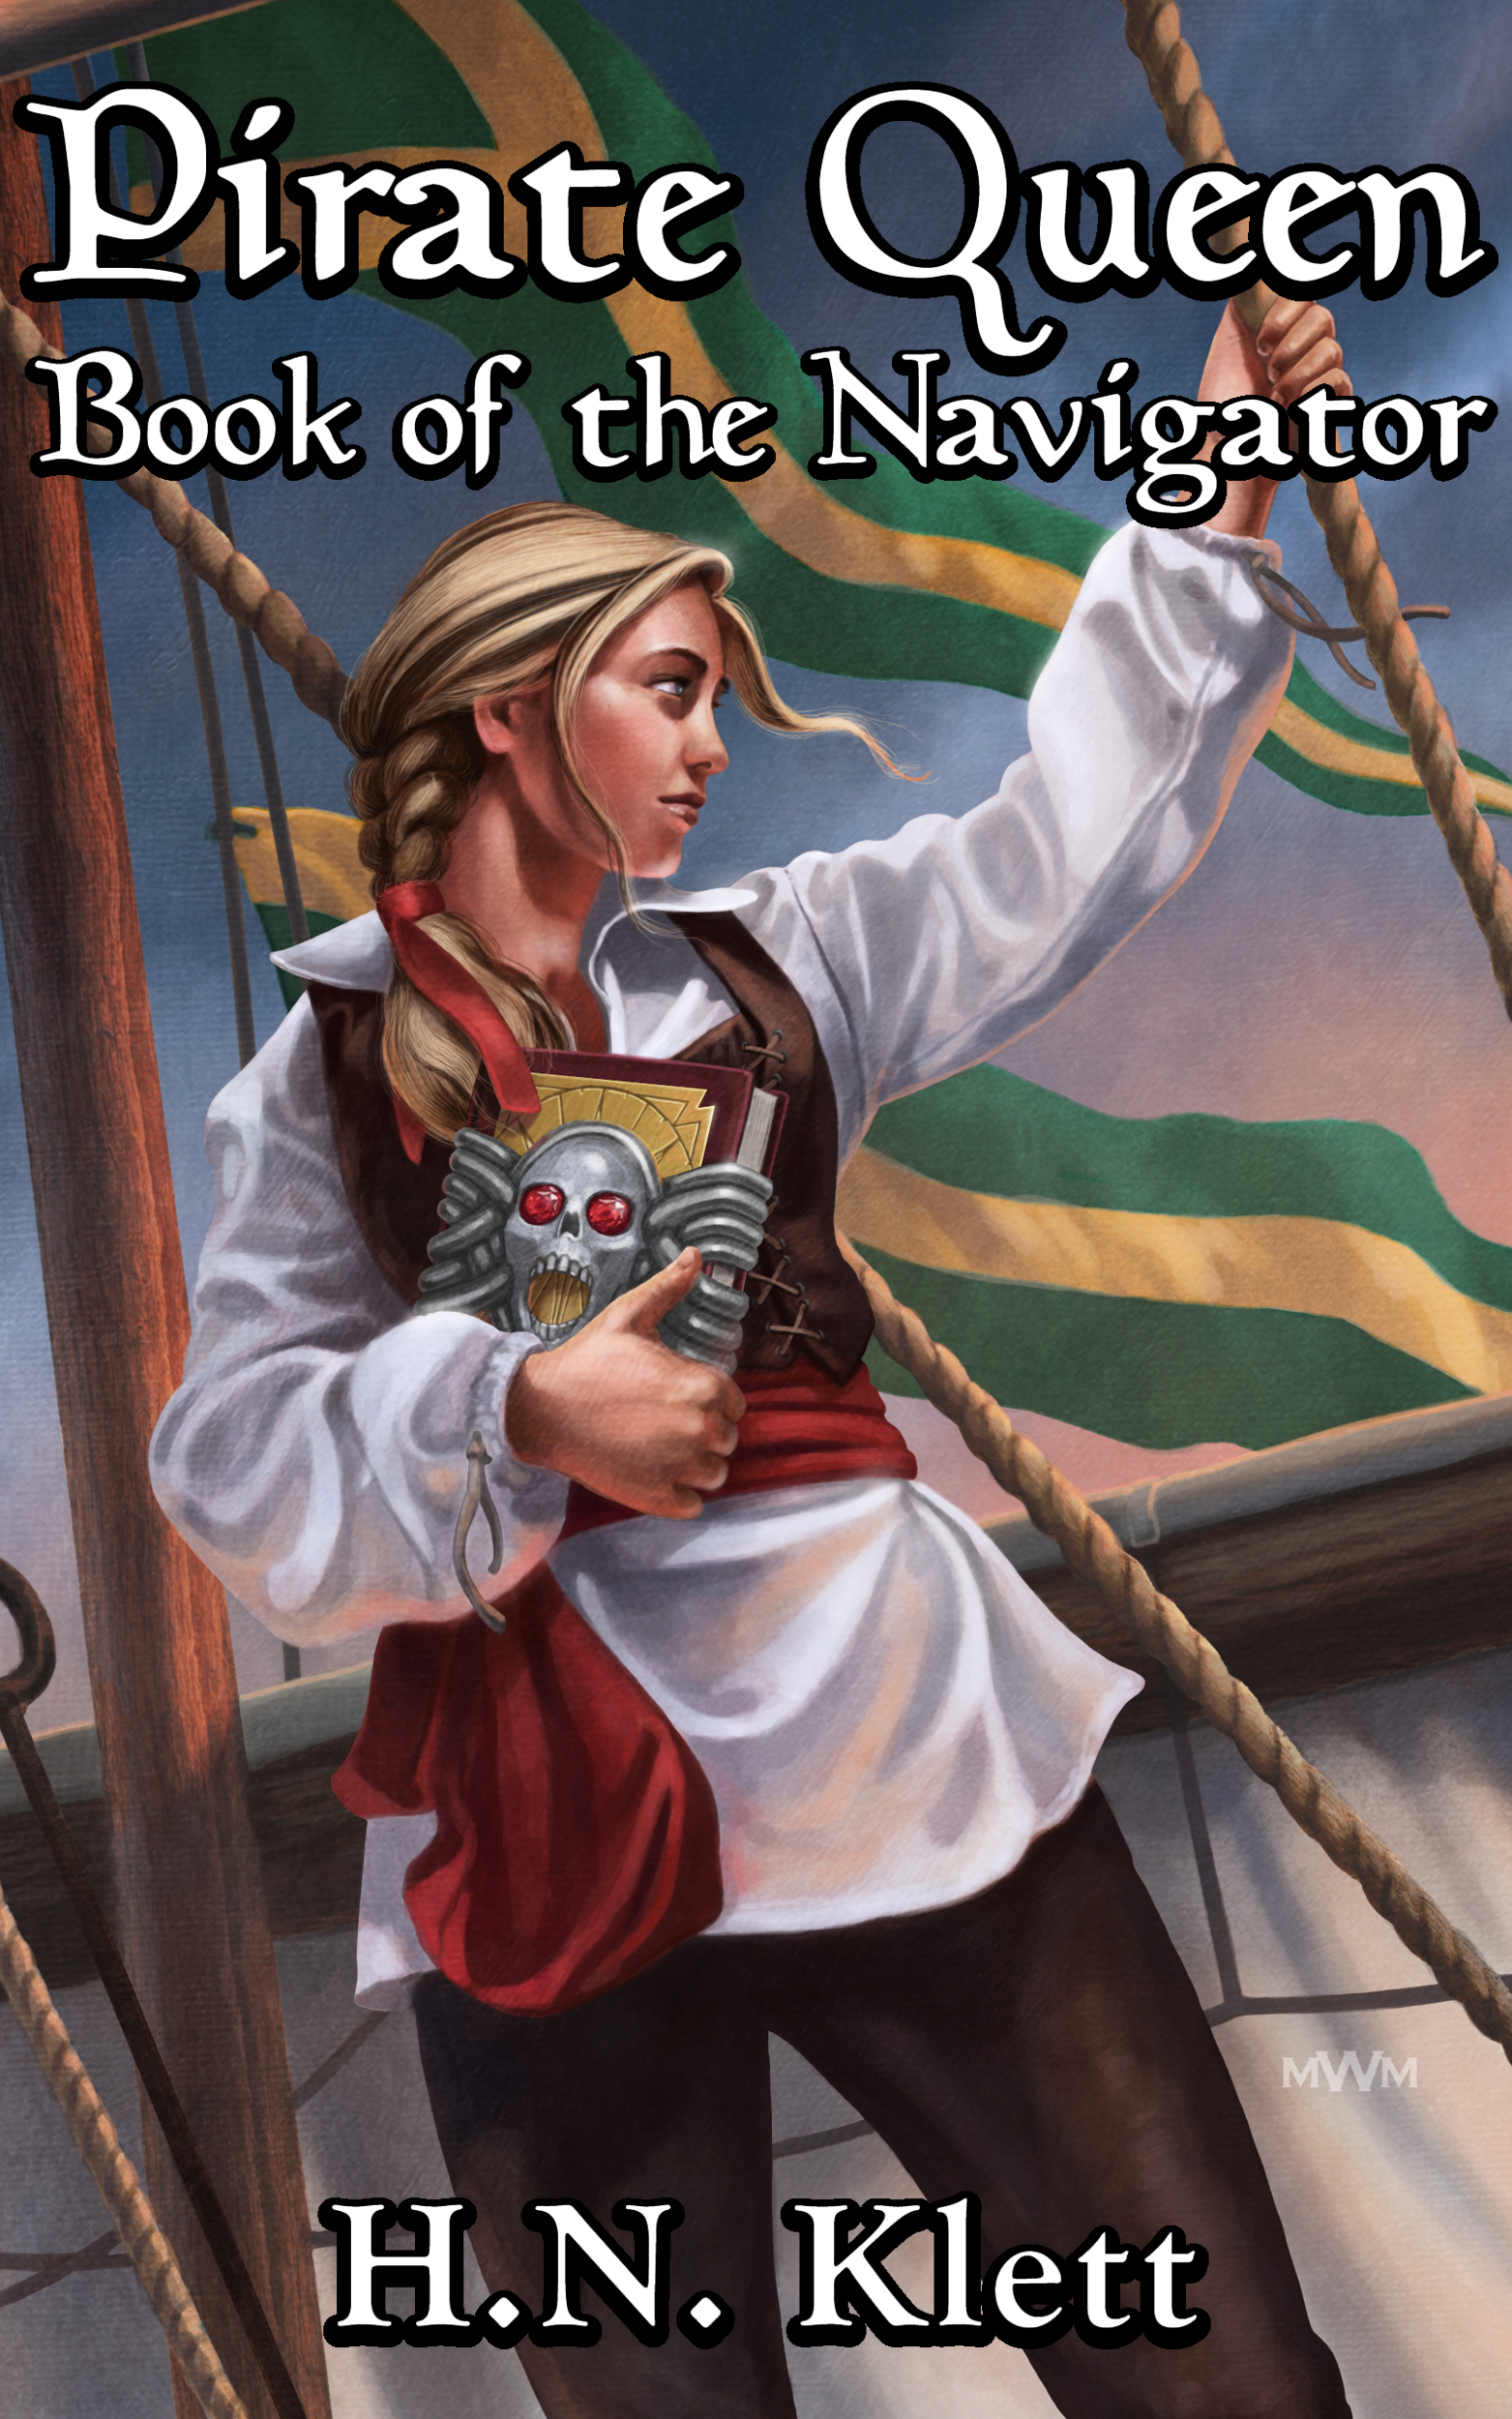 Pirate Queen: Book of the Navigator by H.N. Klett